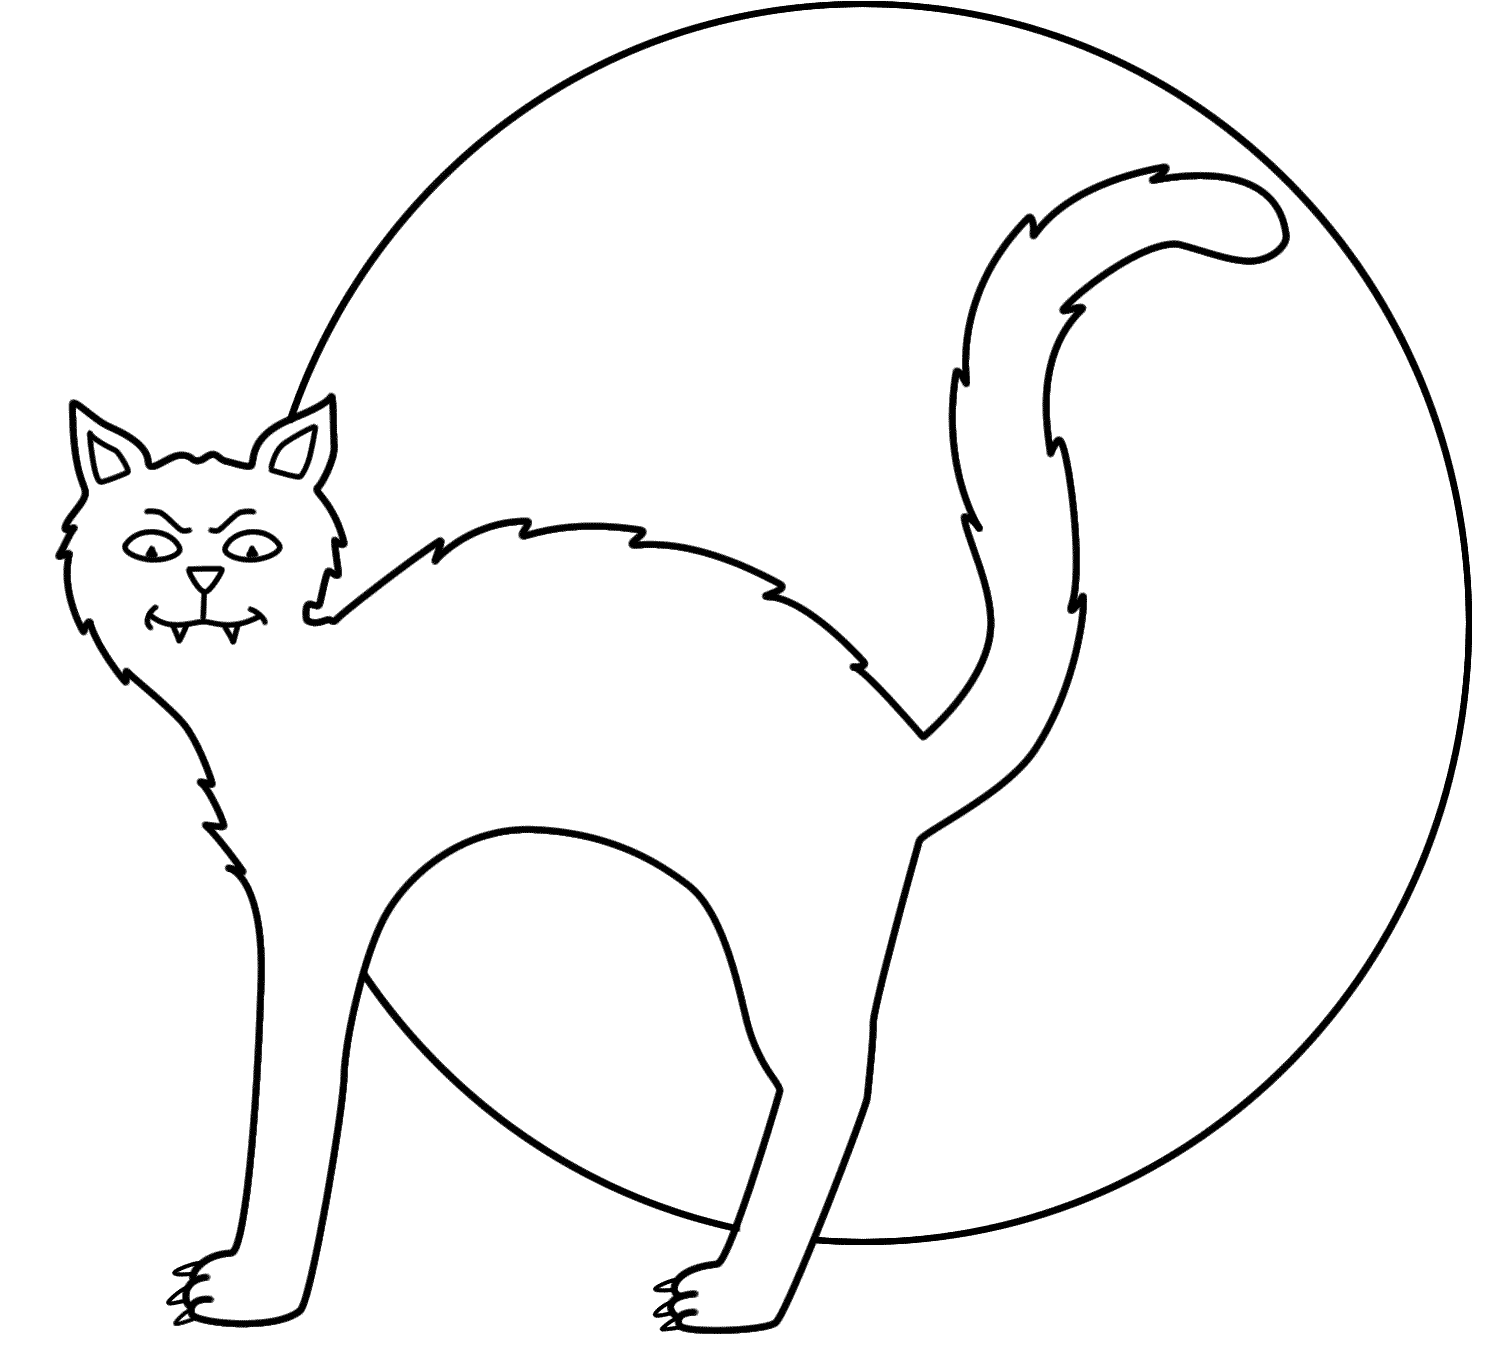 1490x1352 Halloween Black Cat Coloring Page